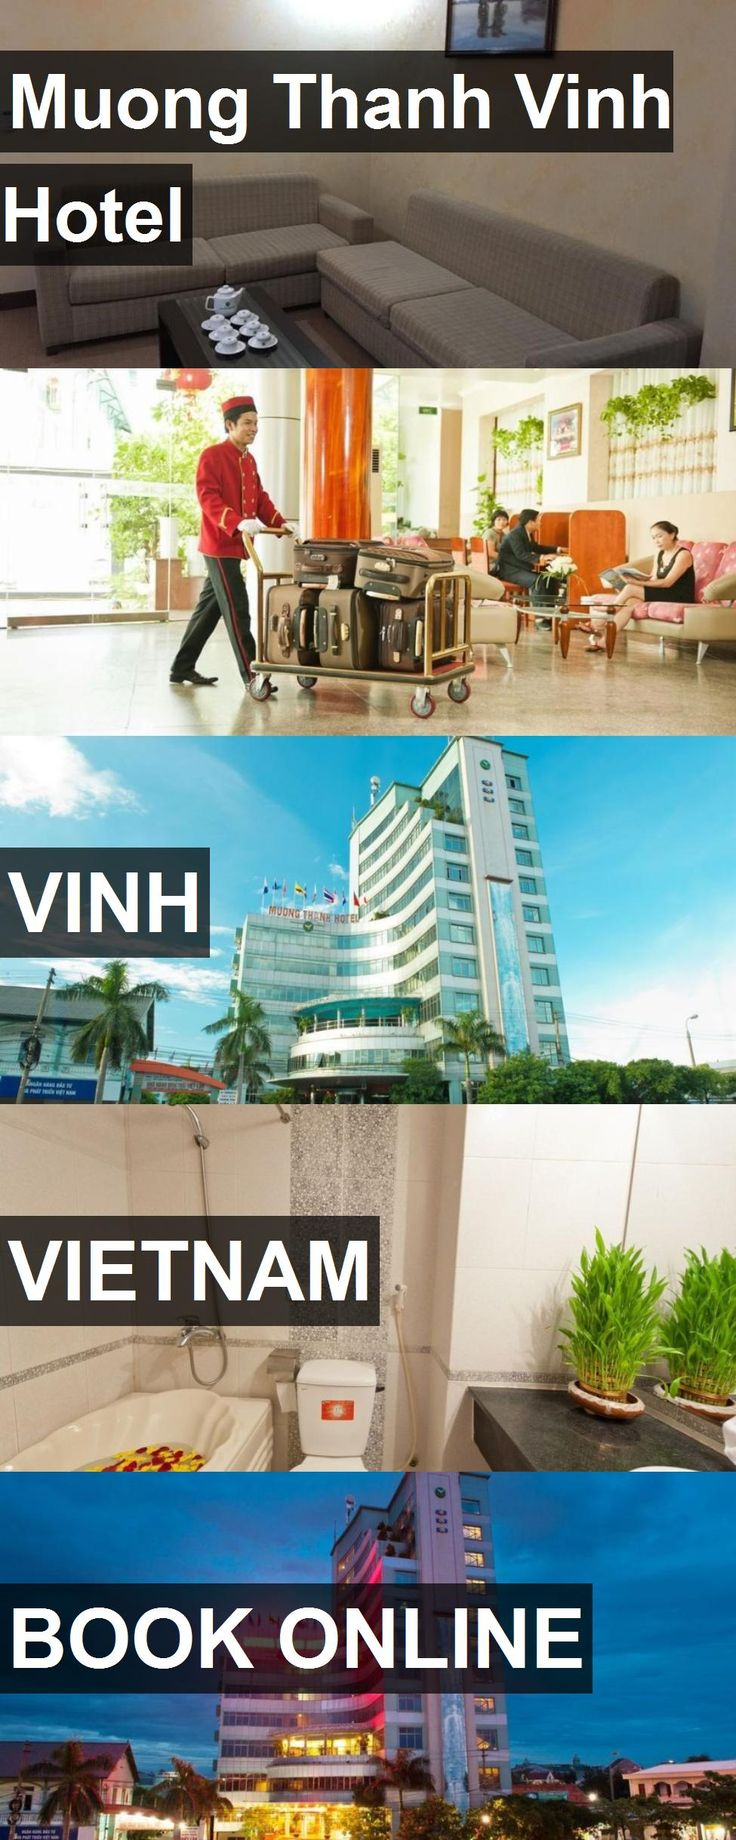 Muong Thanh Vinh Hotel in Vinh, Vietnam. For more information, photos, reviews and best prices please follow the link. #Vietnam #Vinh #travel #vacation #hotel